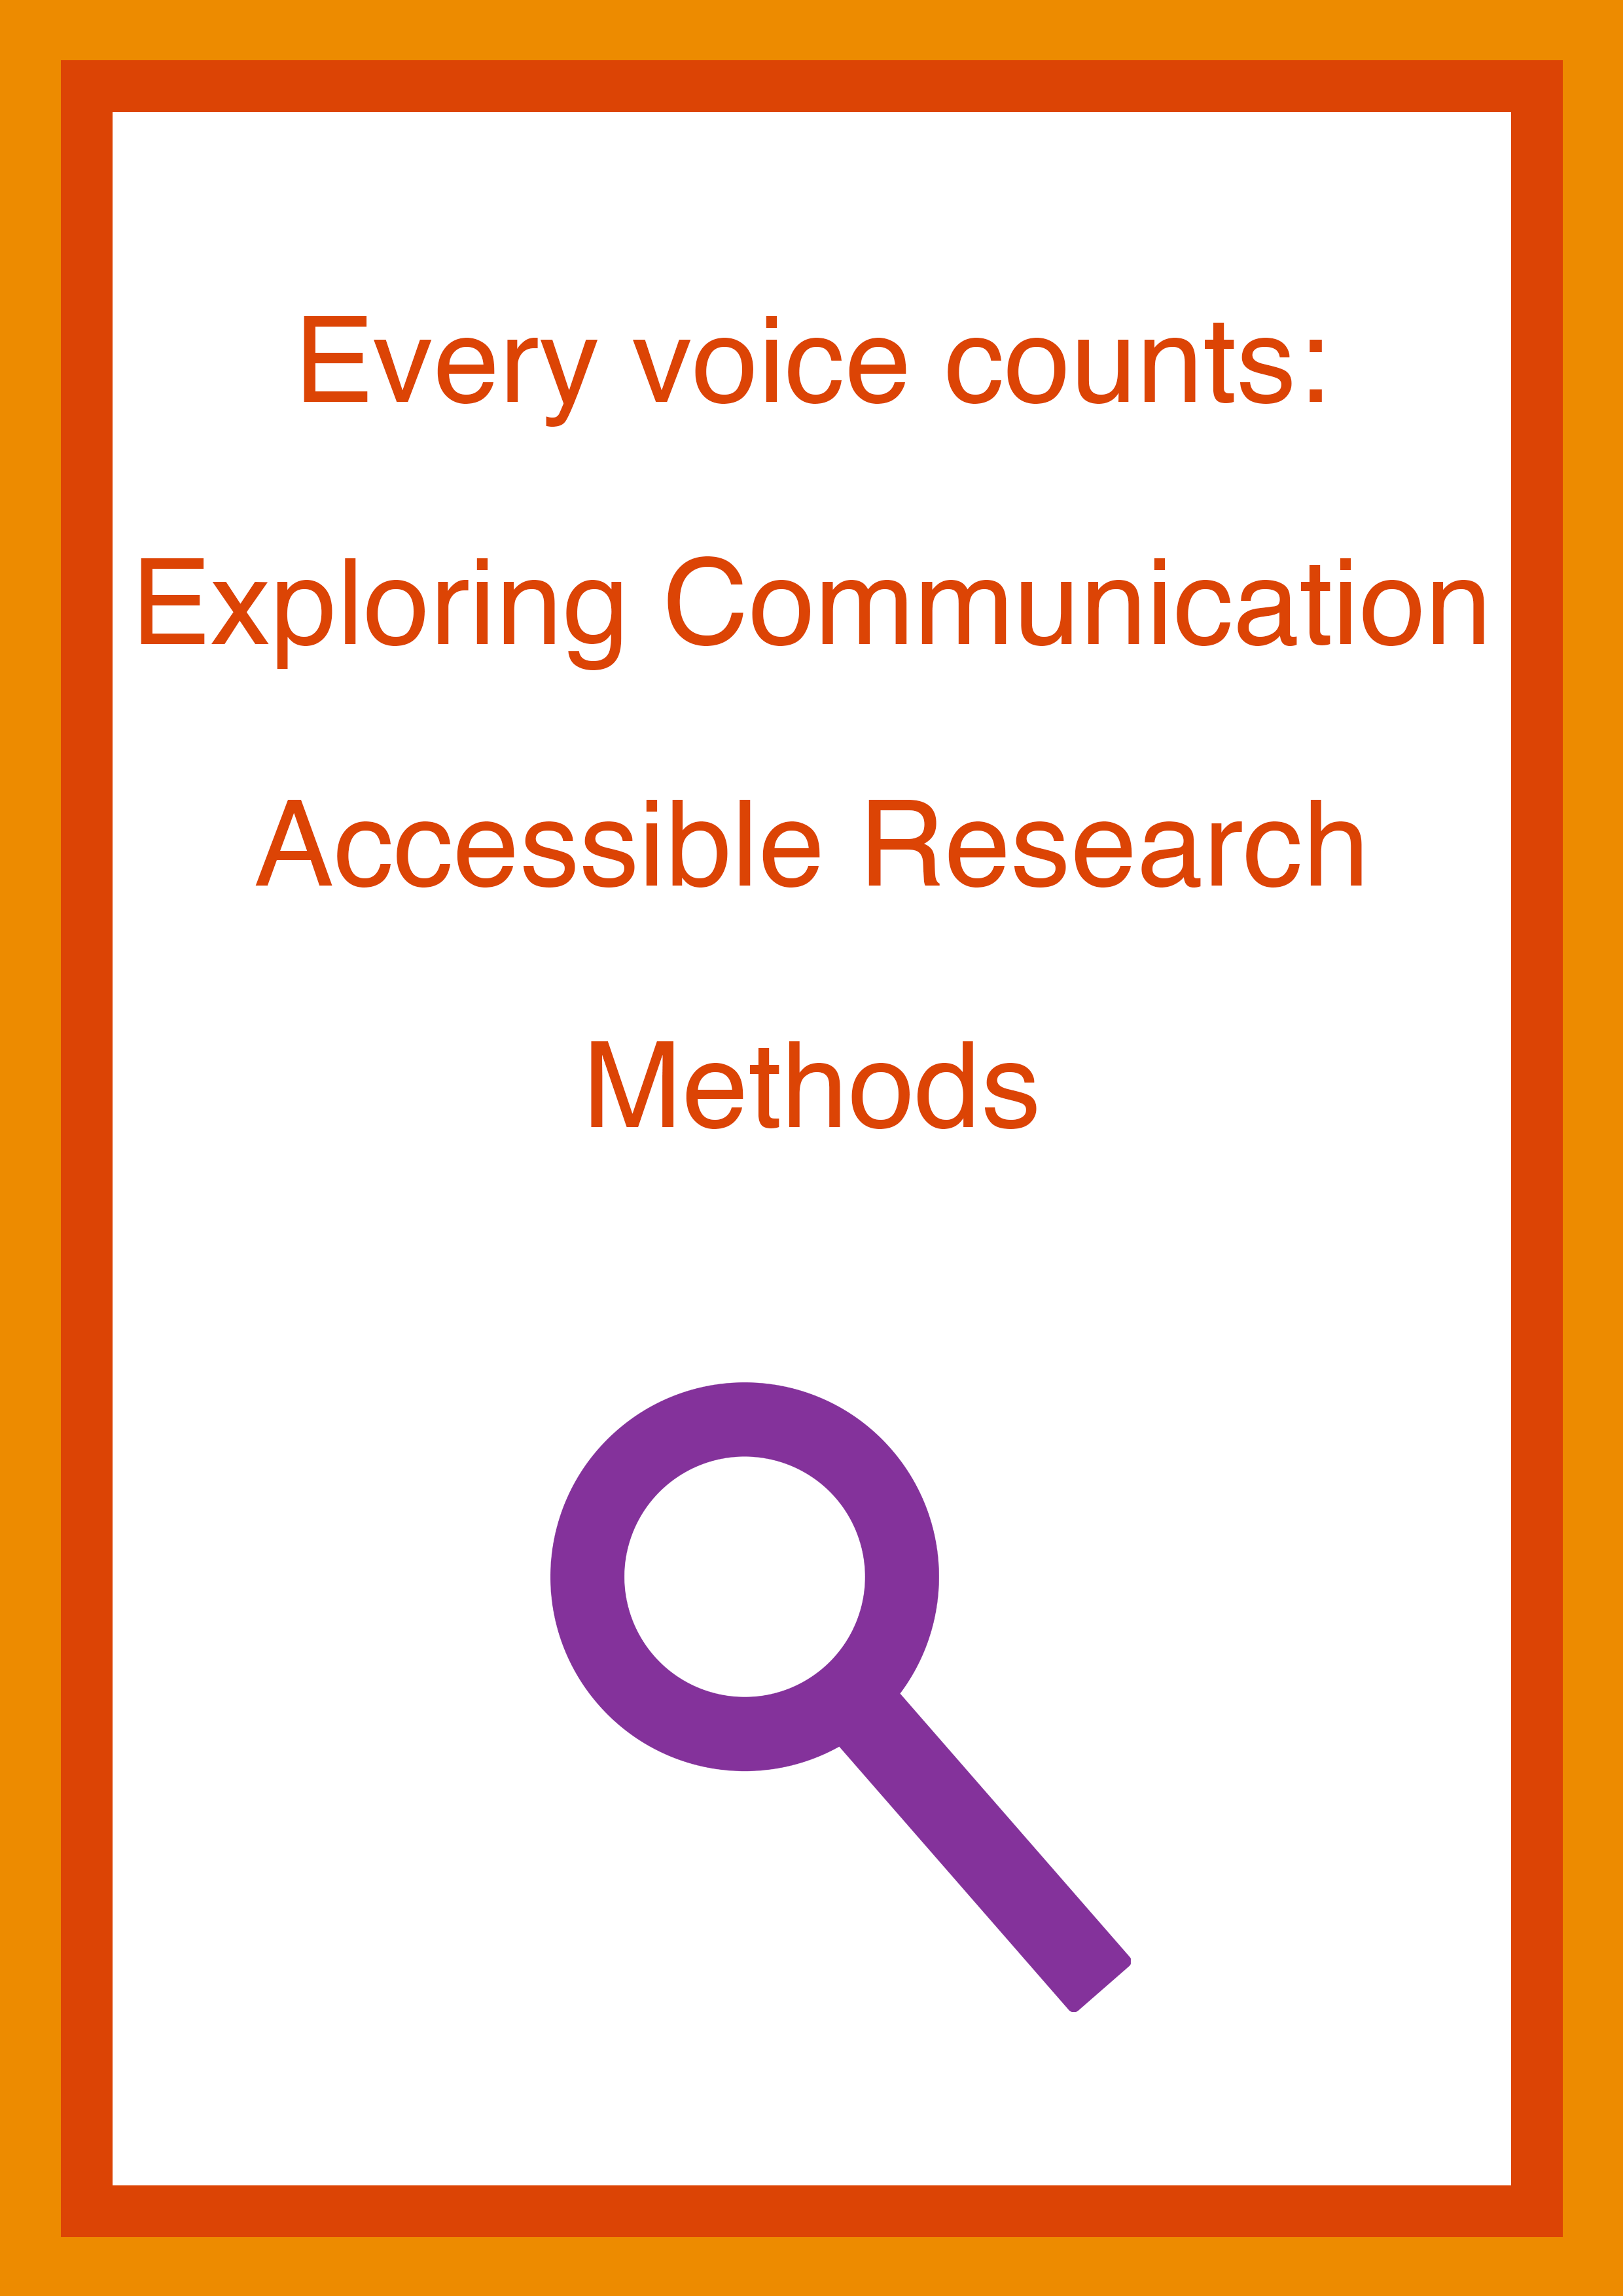 Cover art for: Every voice counts: Exploring Communication Accessible Research Methods